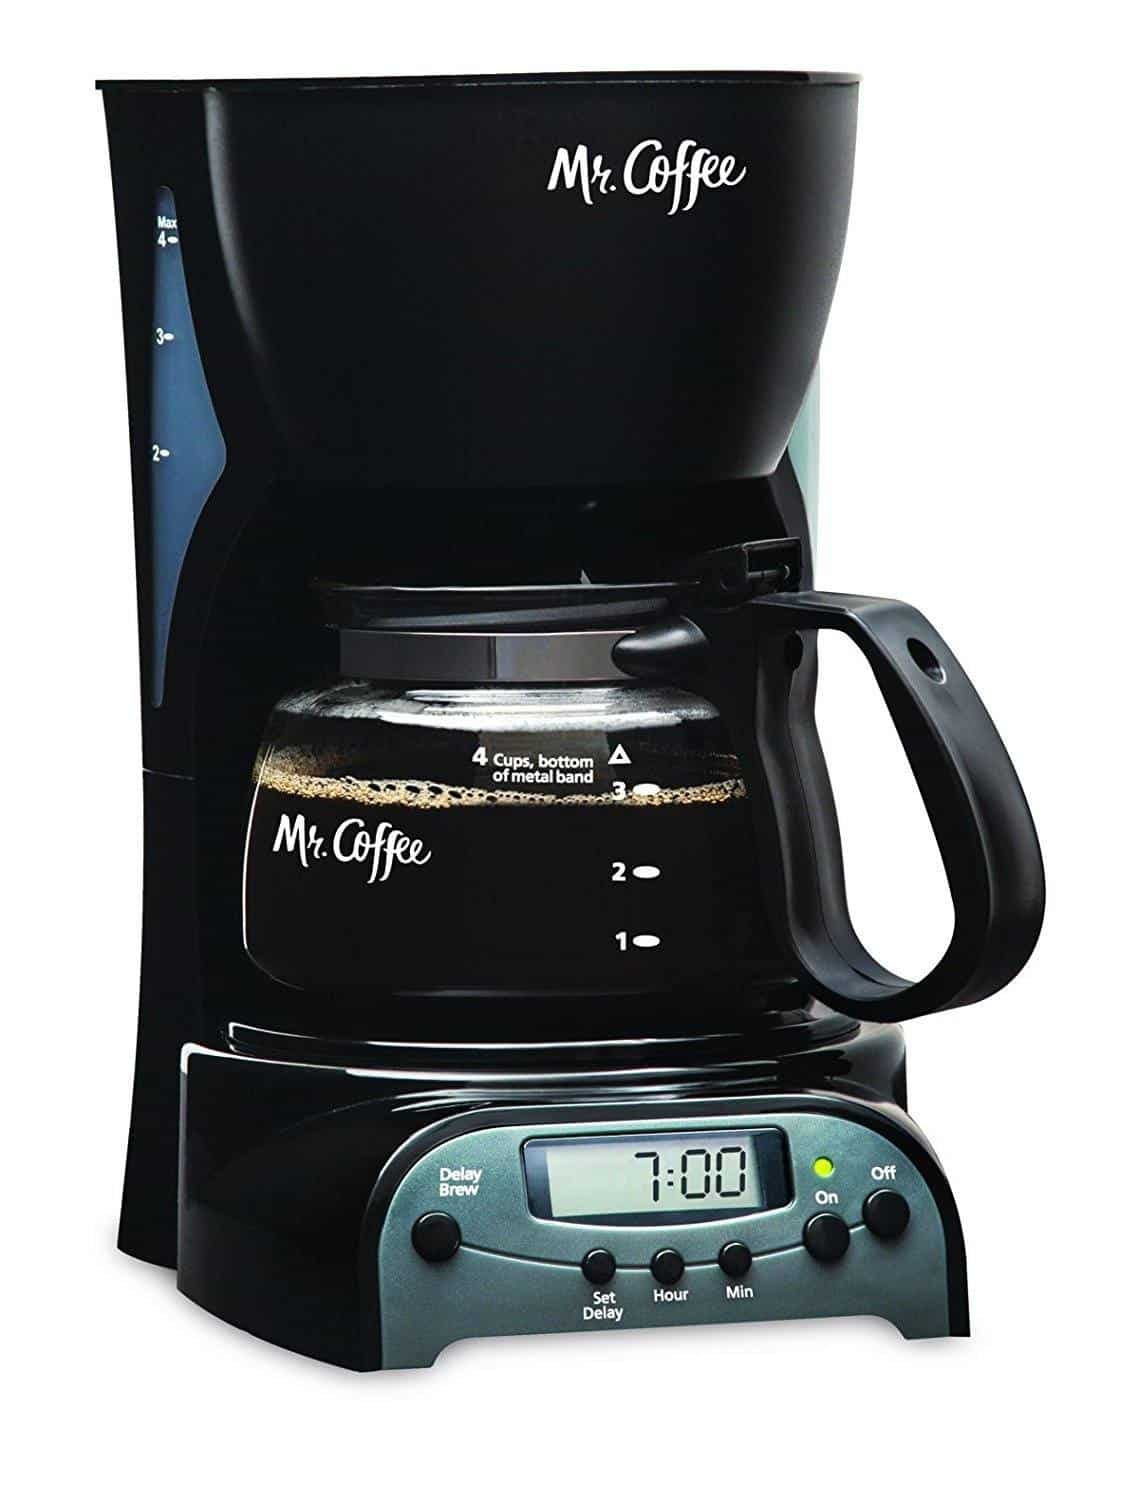 Mr Coffee 4-Cup Programmable Coffee Maker